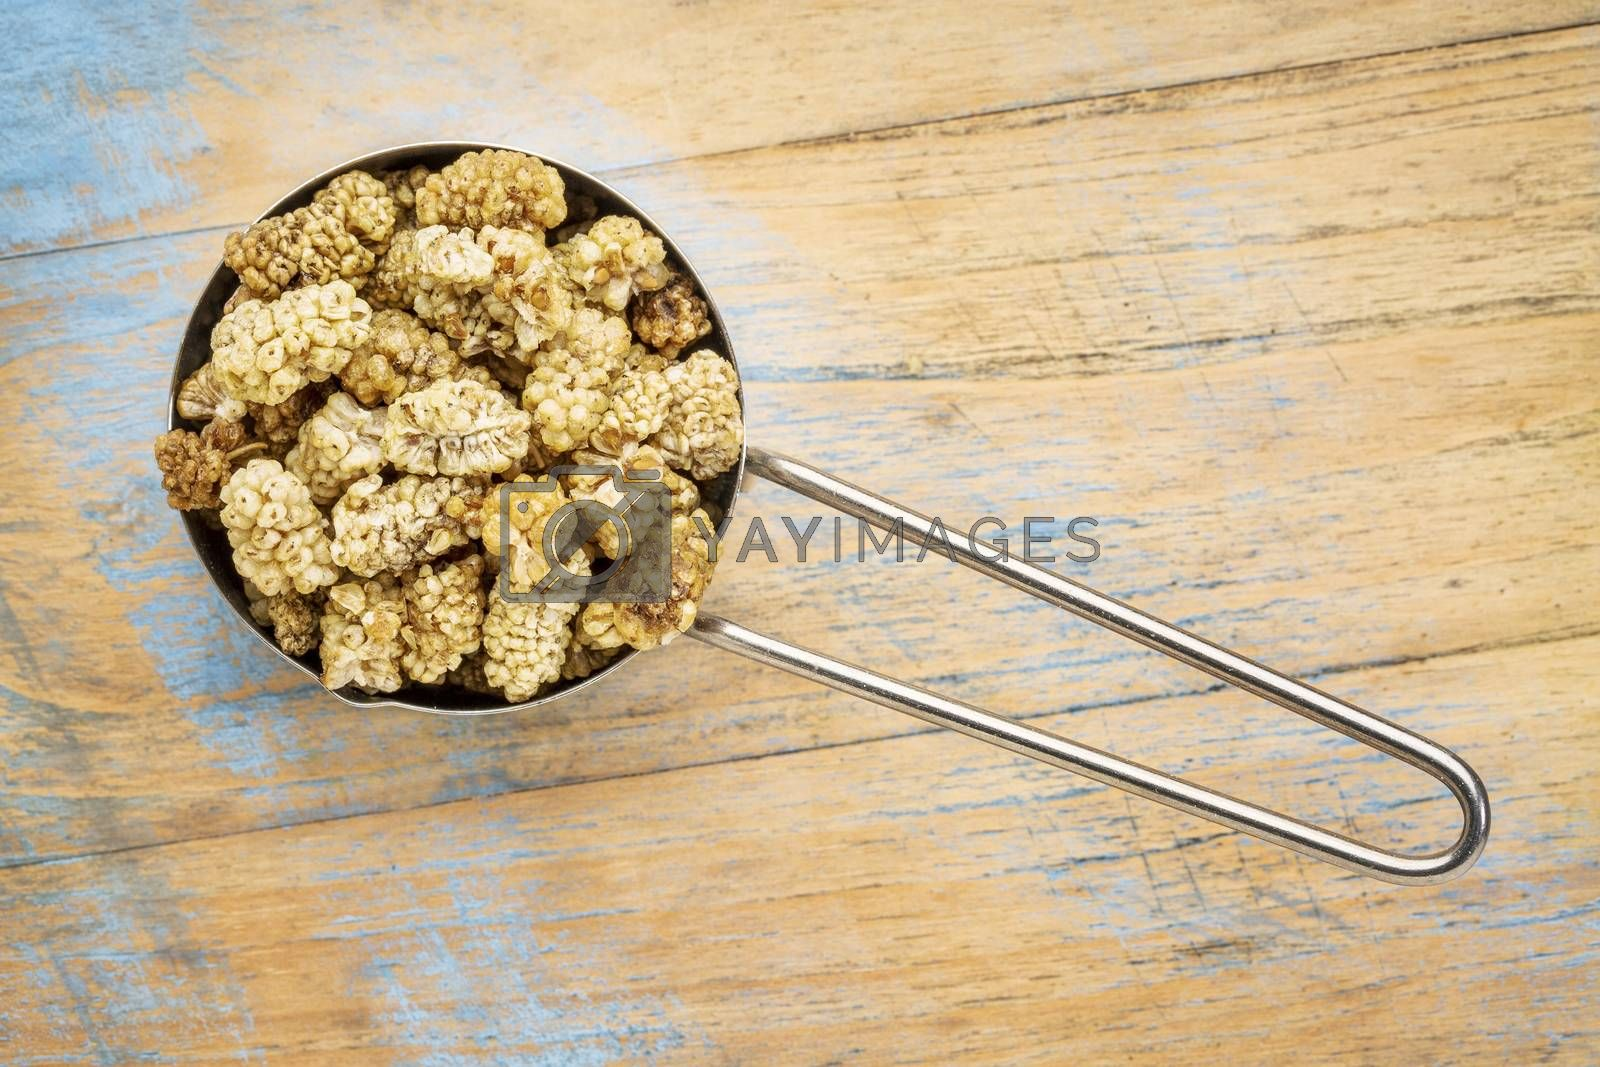 sun-dried white mulberry berries on a measuring metal scoop against grunge wood